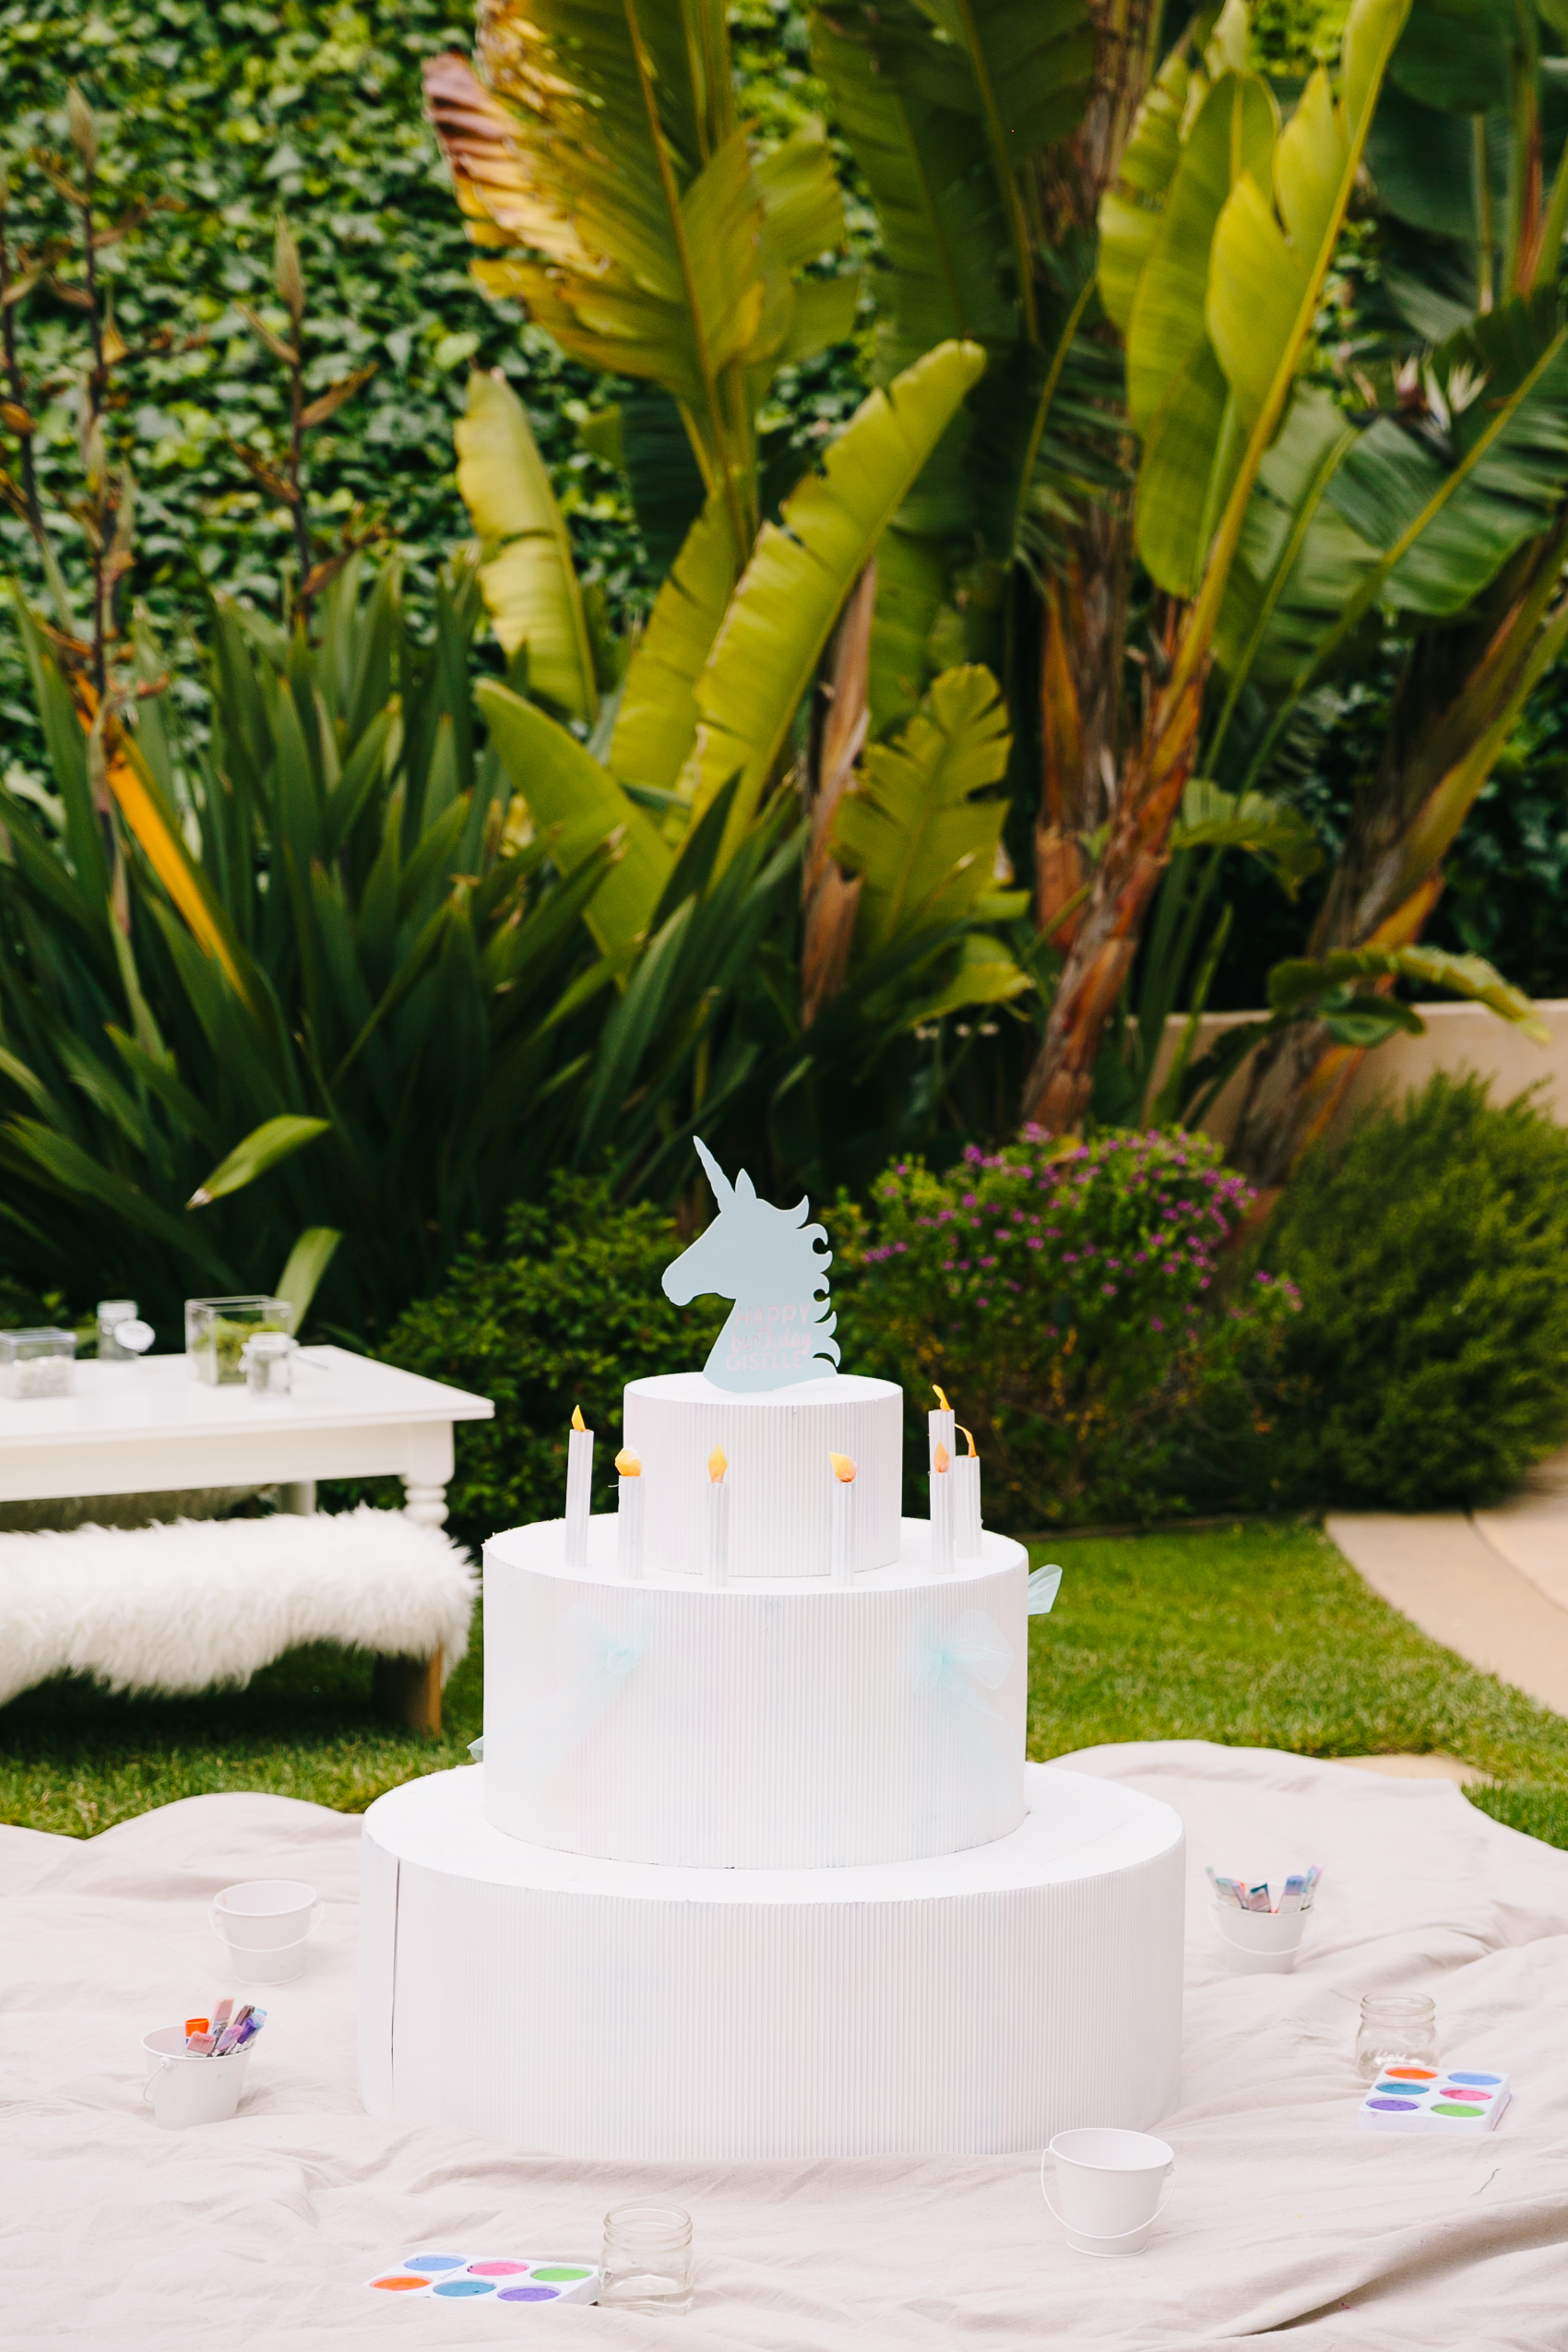 Los_Angeles_Family_Photographer_Luxury_Childrens_Party_Beverly_Hills_Unicorn_Birthday_Party-0684.jpg